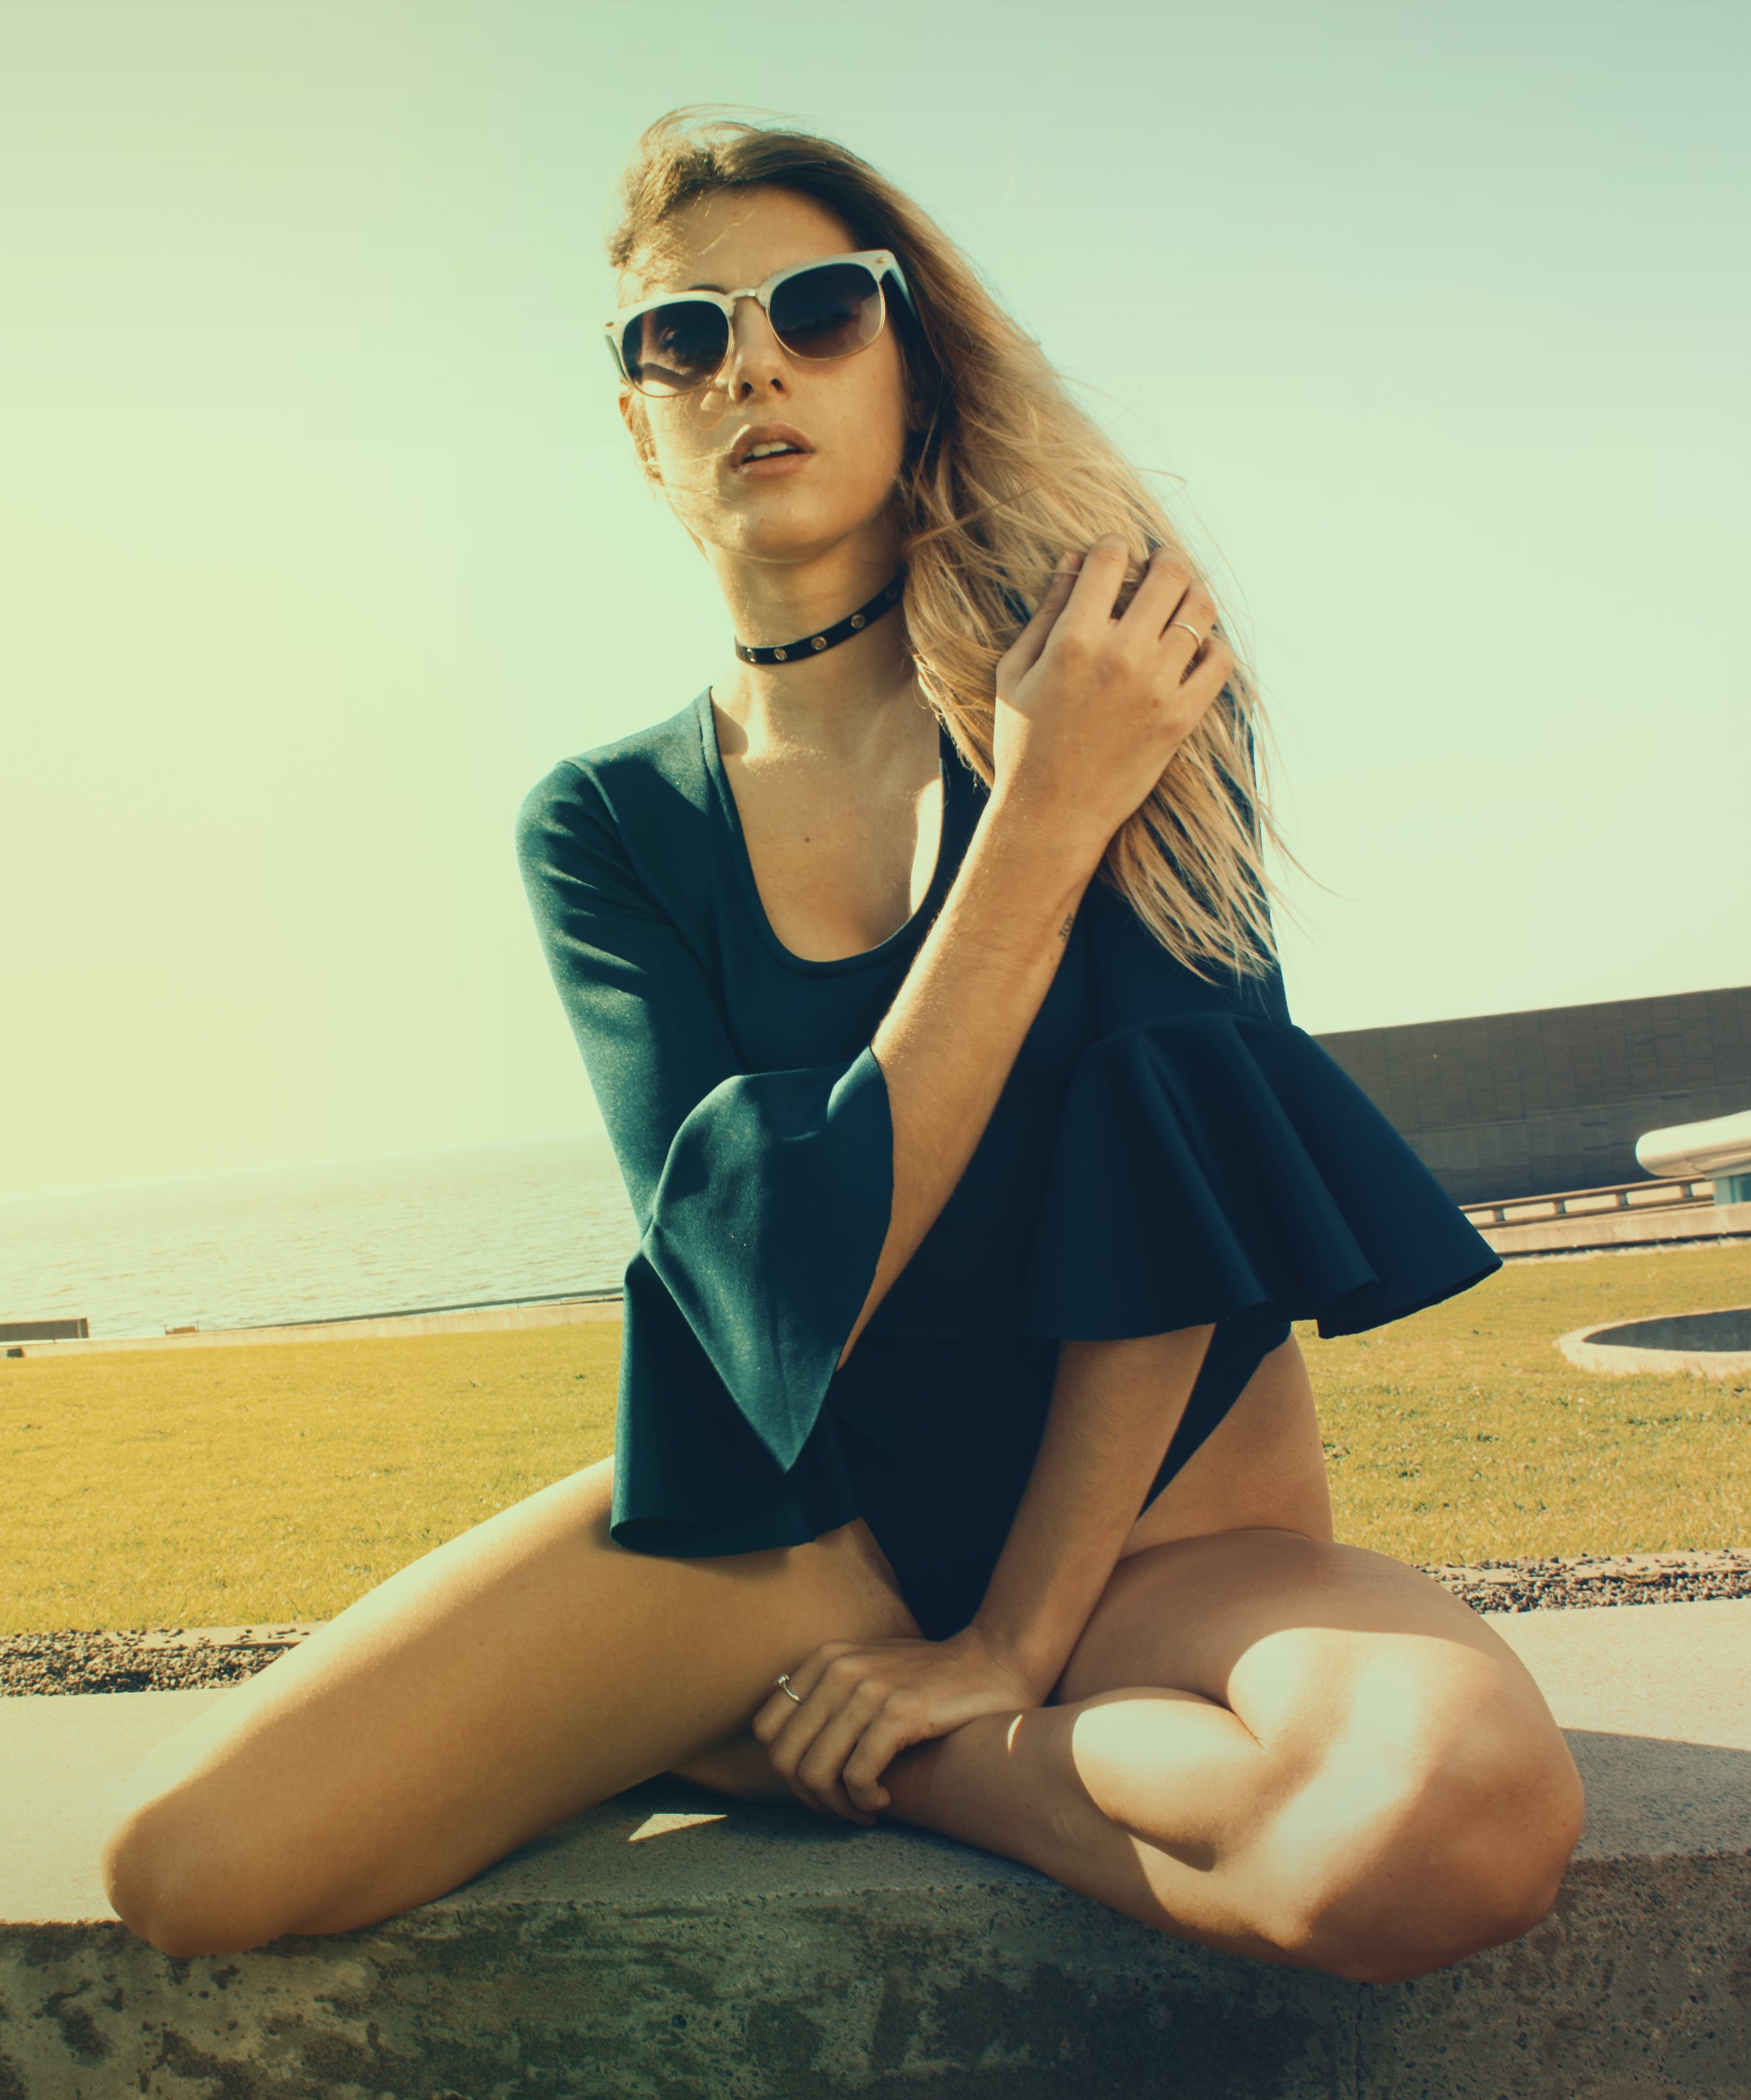 Woman Wearing Sunglasses and Blue Blouse during Photography Under Sunset